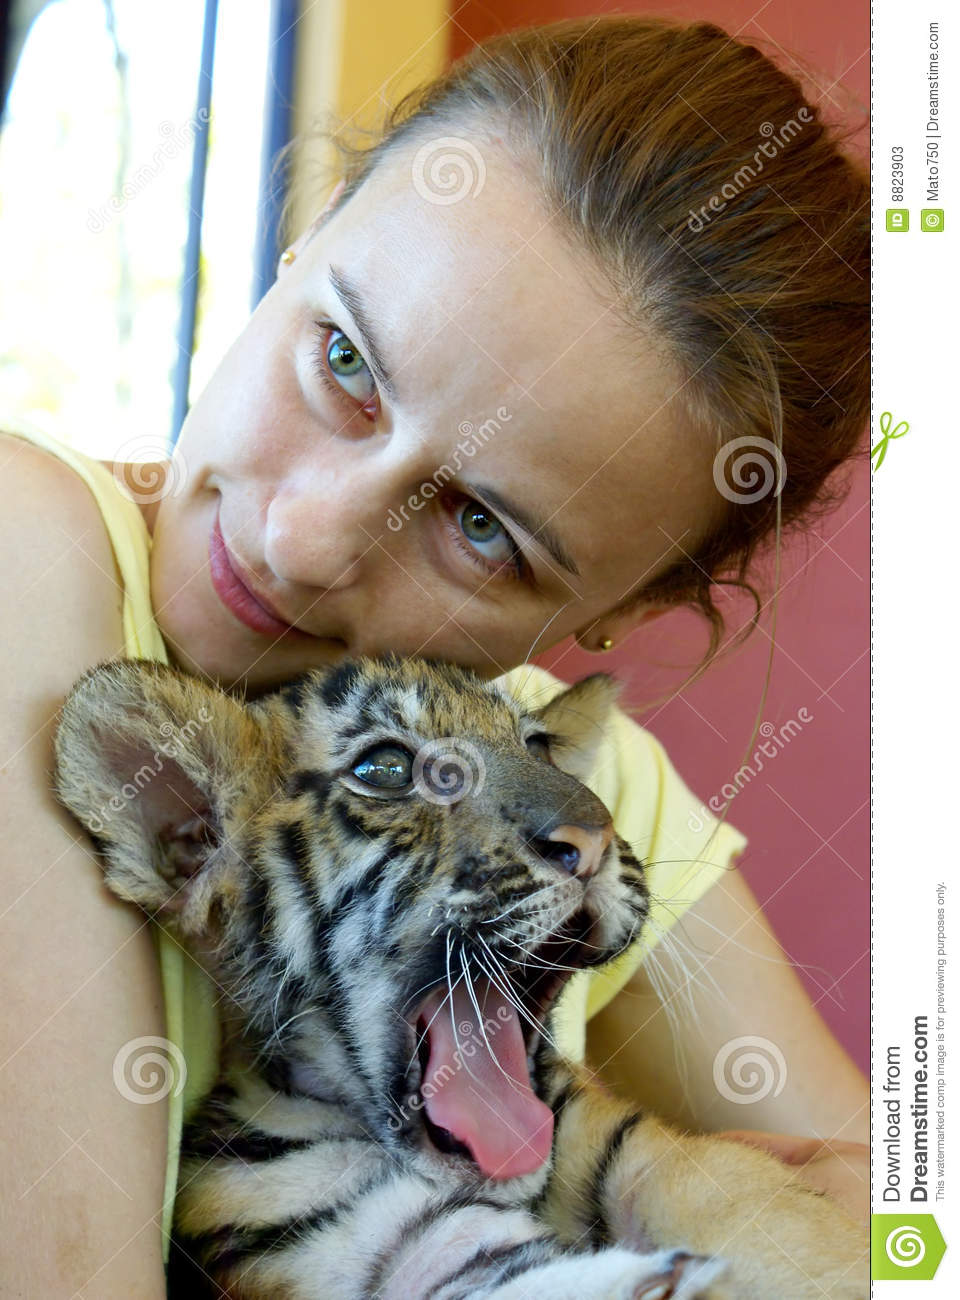 girl with baby tiger stock photos image 8823903 clip art puppies black labs clip art puppies tgif